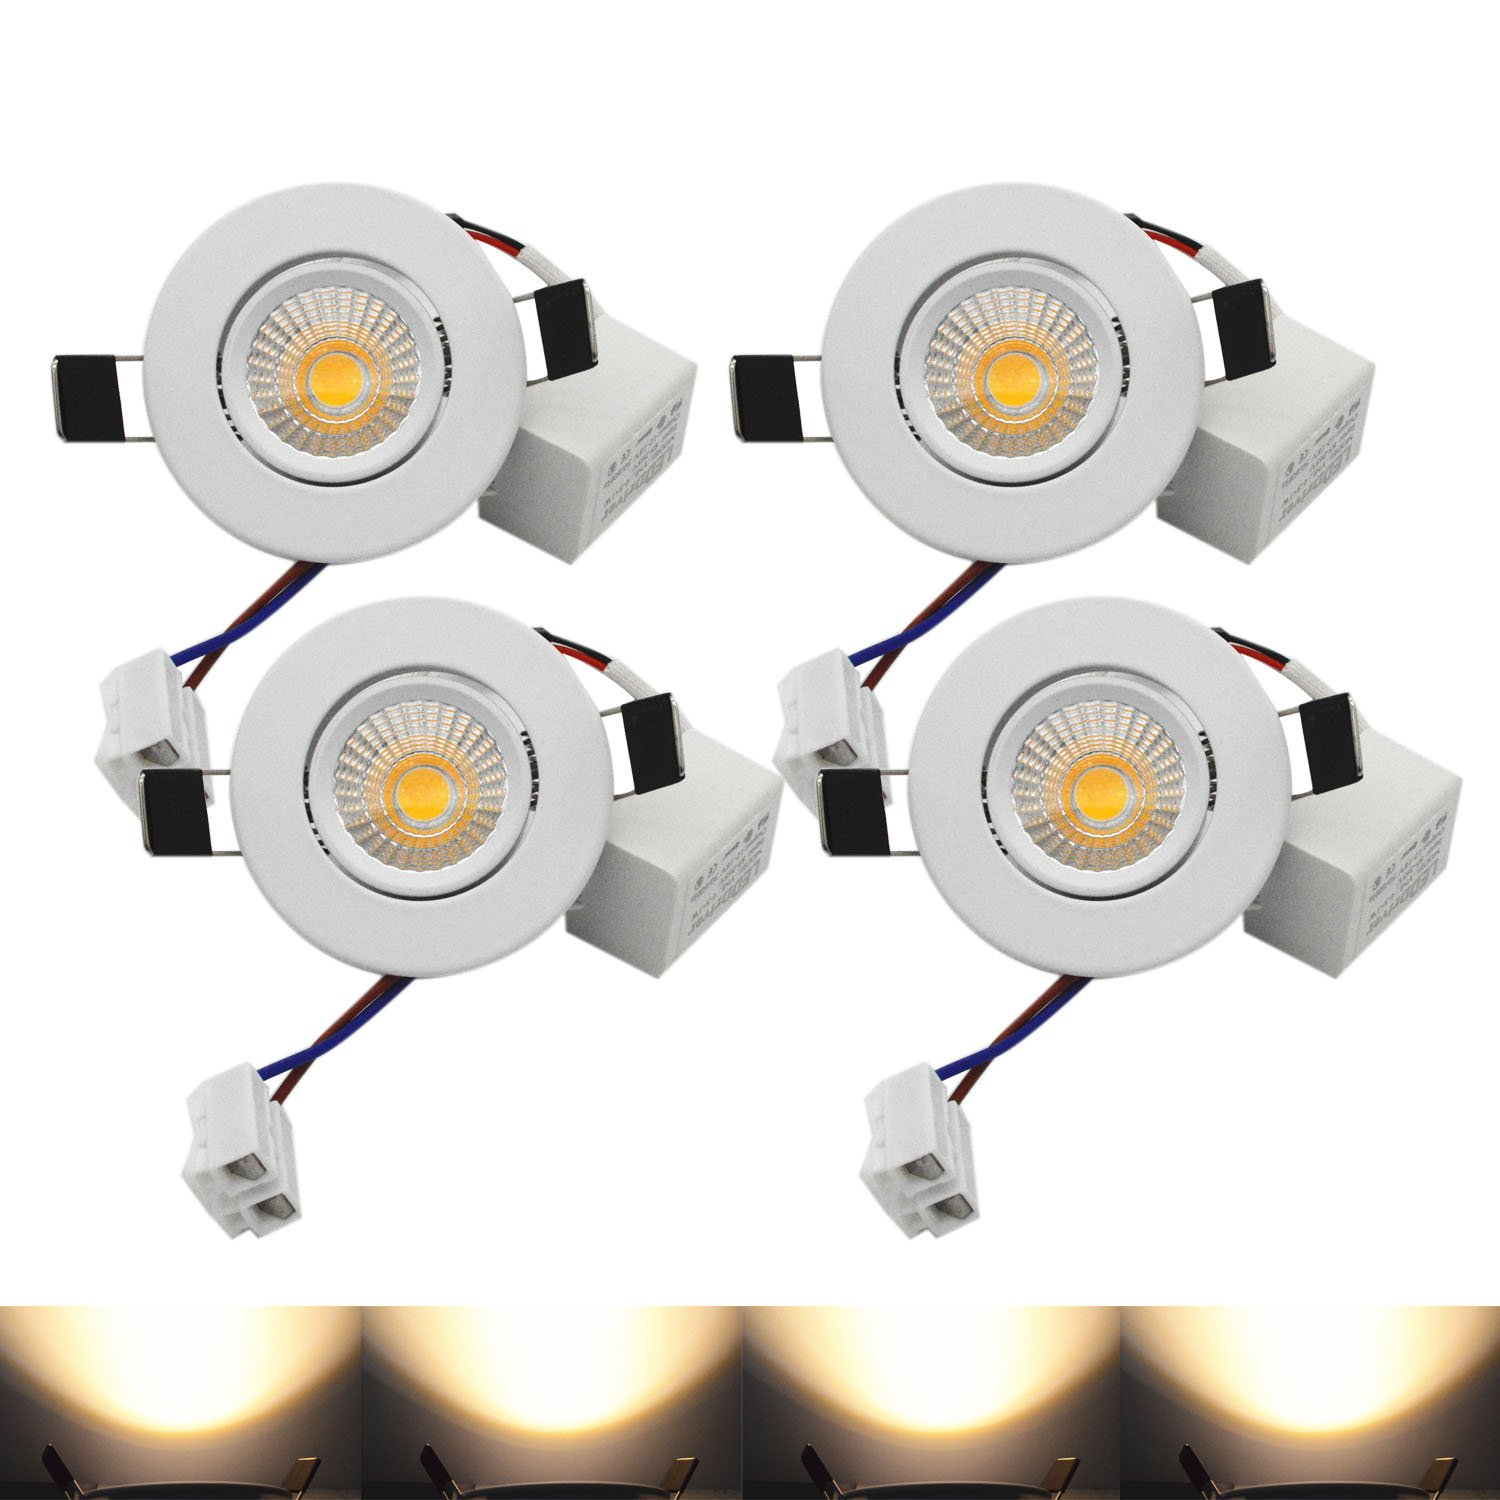 LED Downlight ZDPCYT 3W COB 110V Dimmable Ceiling Lights Warm White 60 Beam Angle Recessed Lighting 3000K-3500K Soft lighting cutout 53mm Pack of 4 With Driver